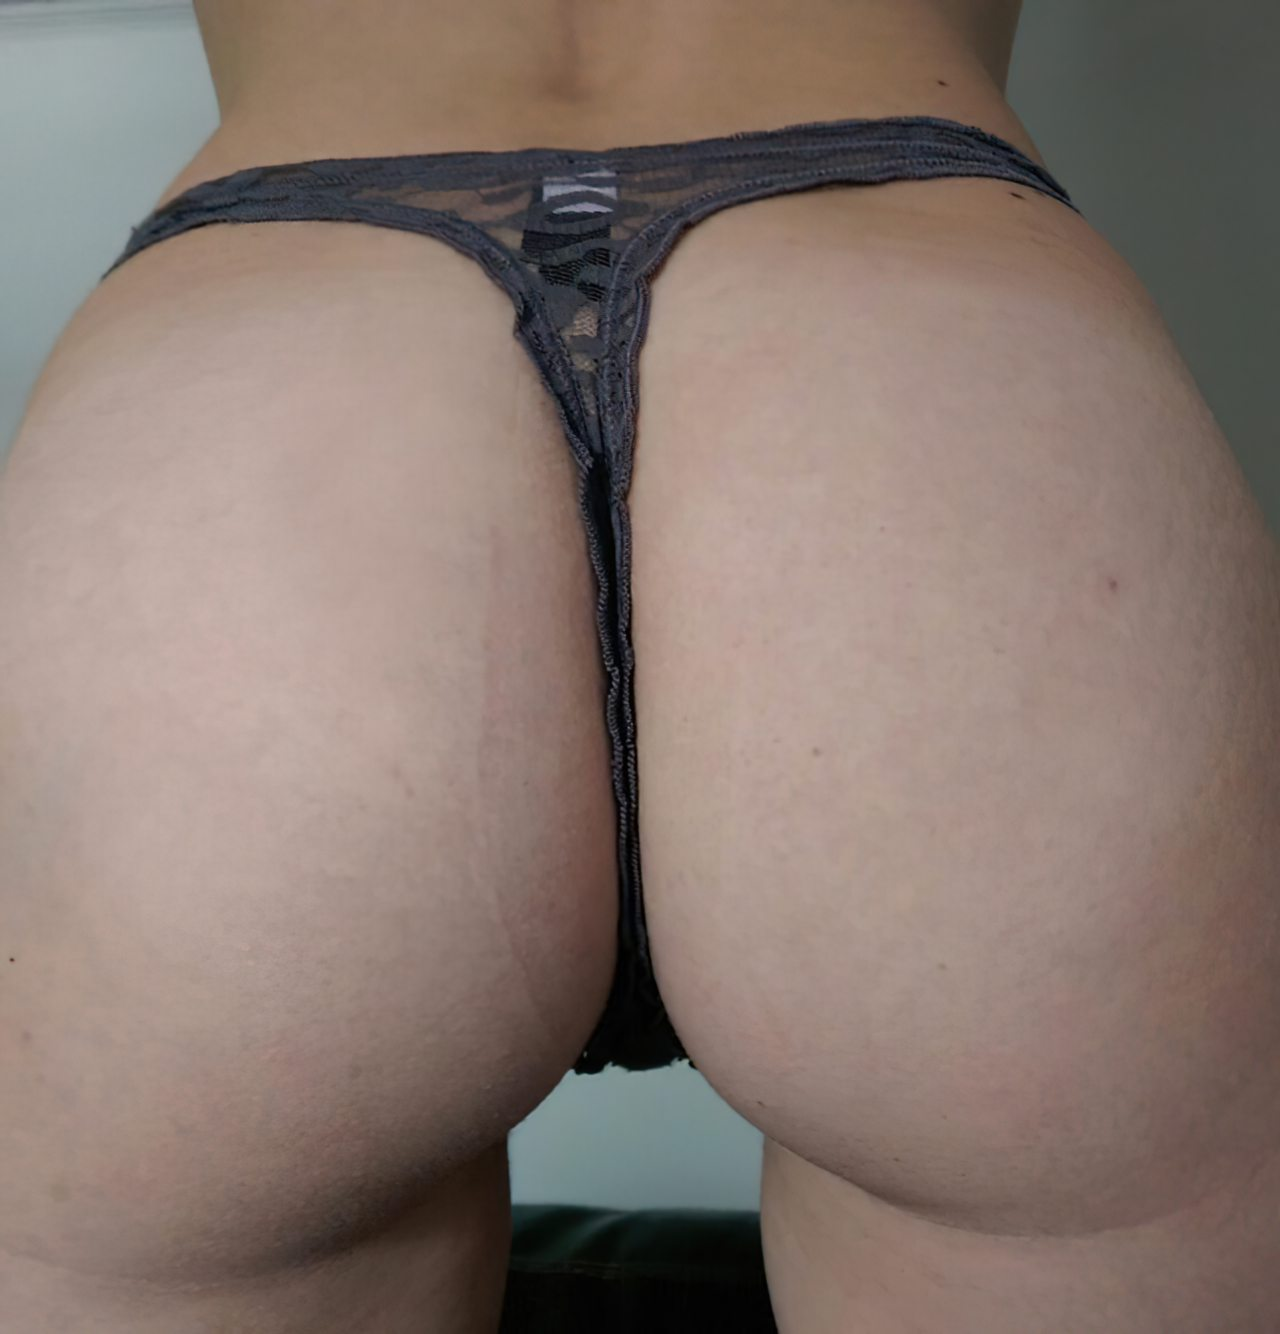 Peitos Excitados (2)